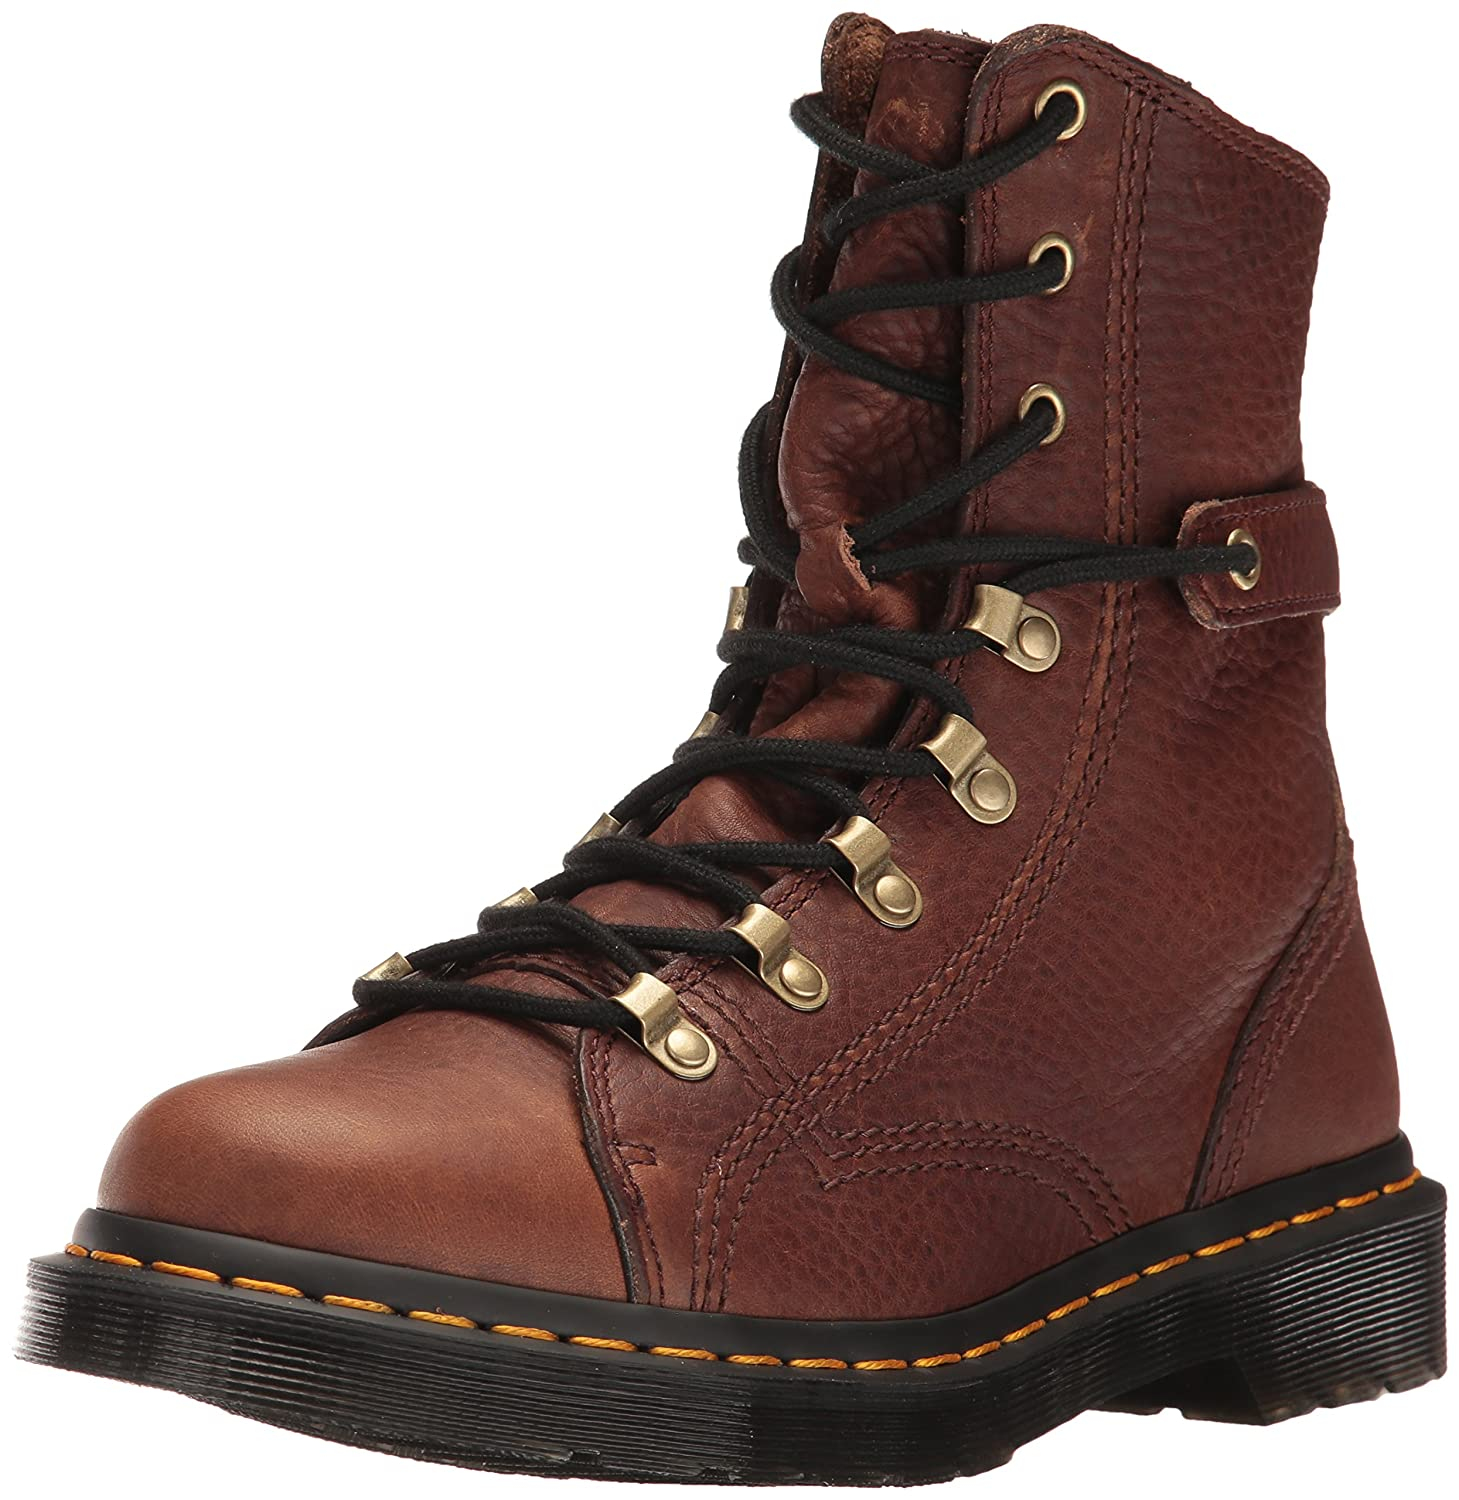 Dr. Martens Women's Coraline in Dark Brown Gizzly Leather Combat Boot B01IDY7WOQ 3 Medium UK (5 US)|Dark Brown Grizzly